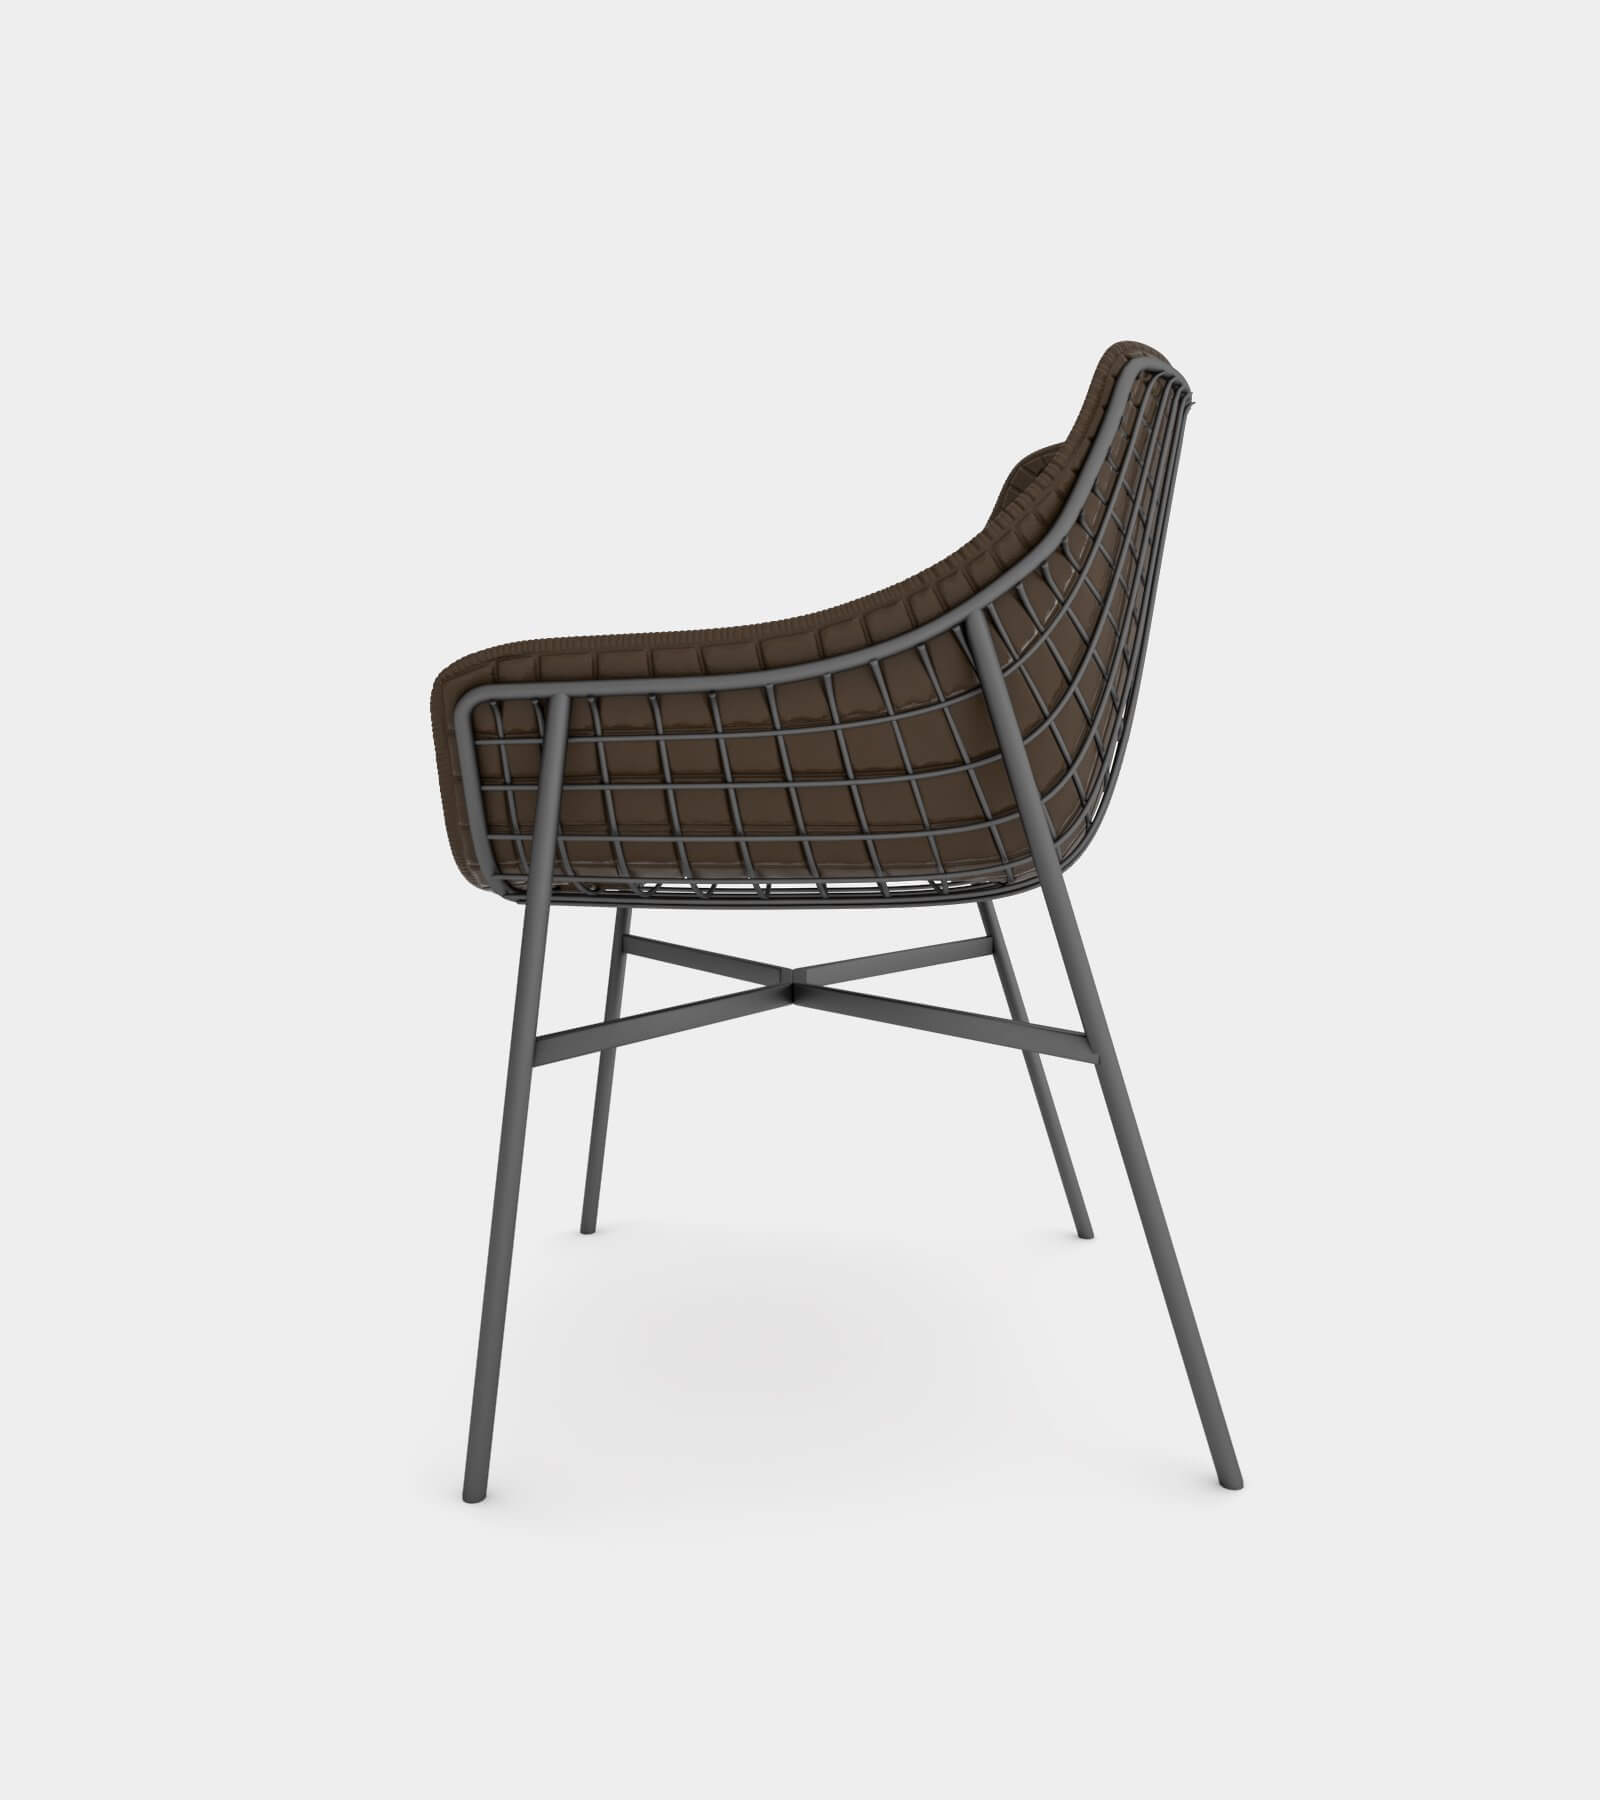 Outdoor summer leather armchair with steel grid 2 - 3D Model